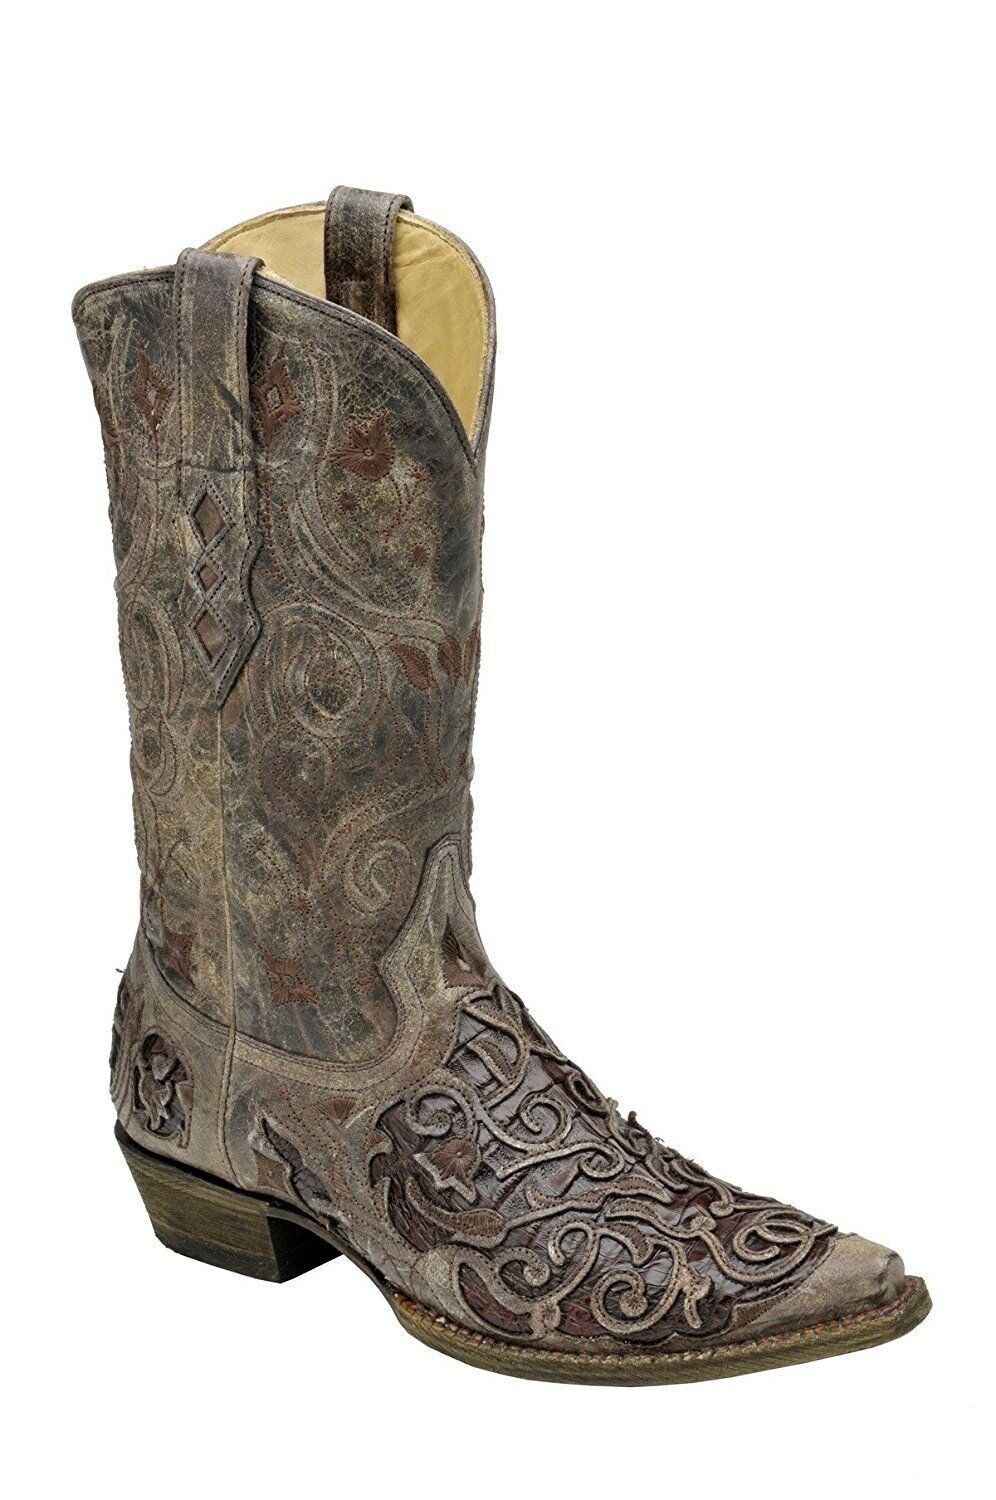 CORRAL Men's Tabac Chocolate Caiman Inlay Snip Toe Cowboy stivali A1236